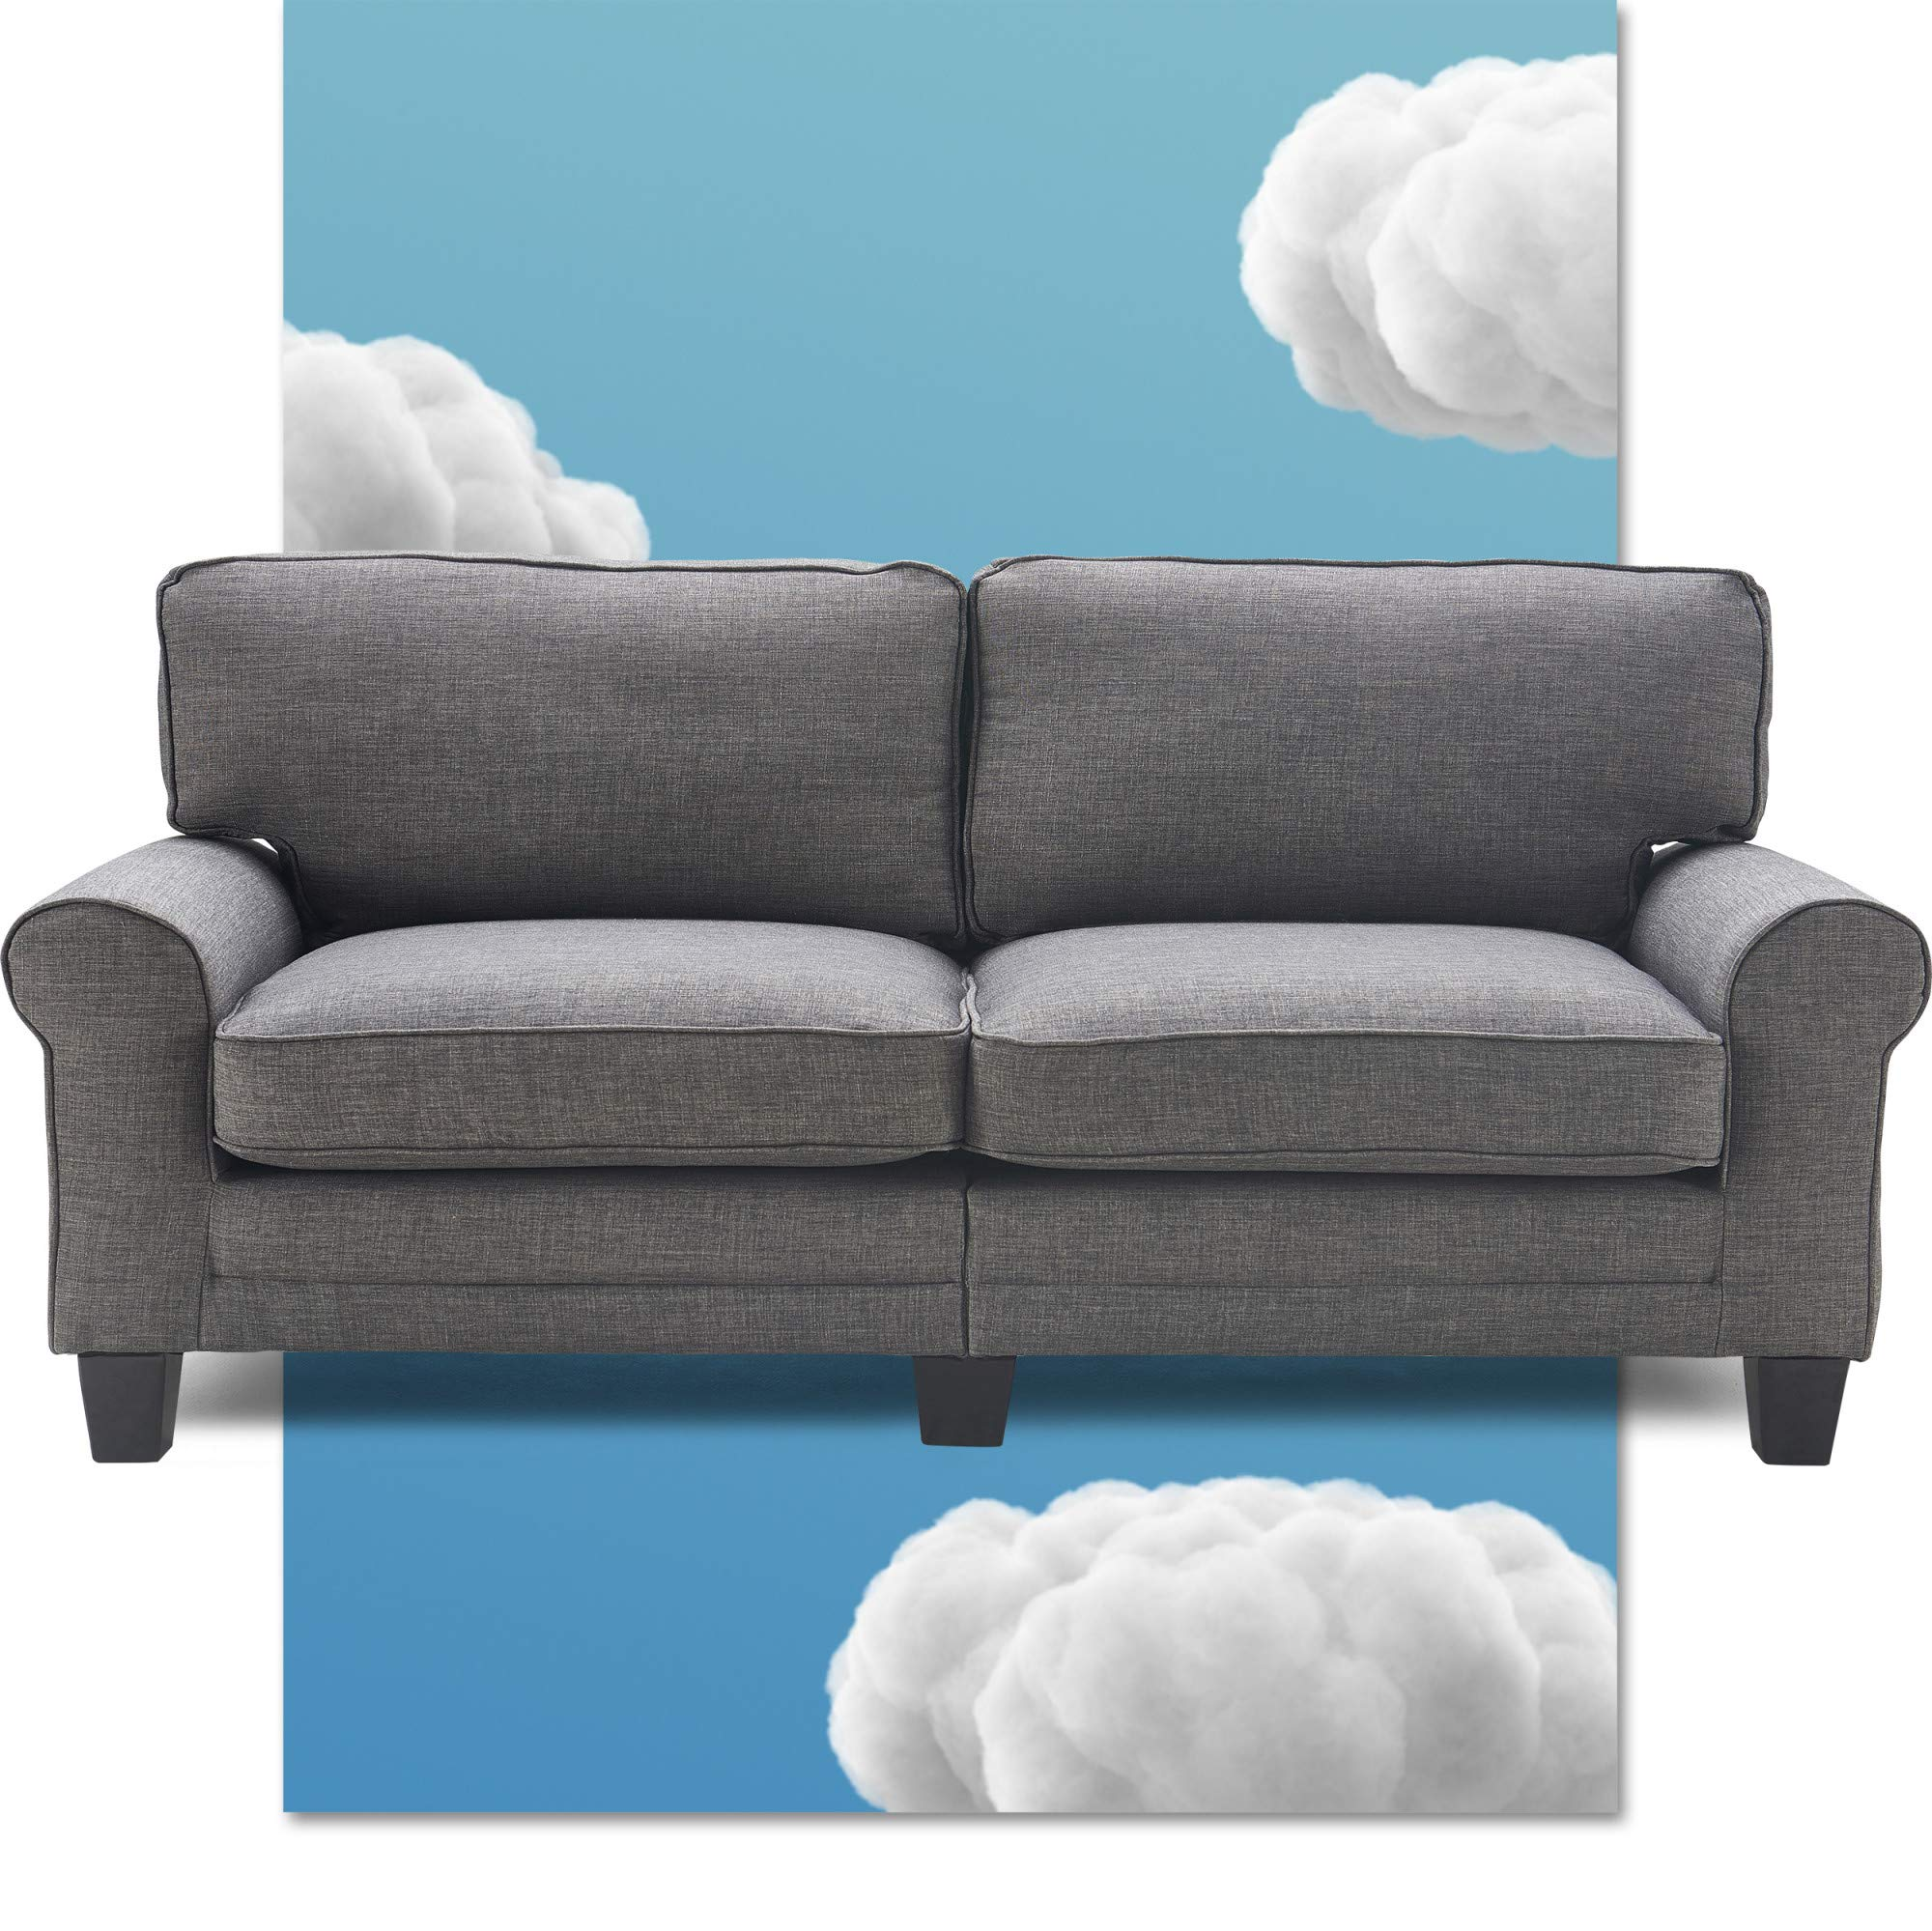 """Serta Copenhagen 78"""" Sofa - Pillowed Back Cushions and Rounded Arms, Durable Modern Upholstered Fabric - Gray"""